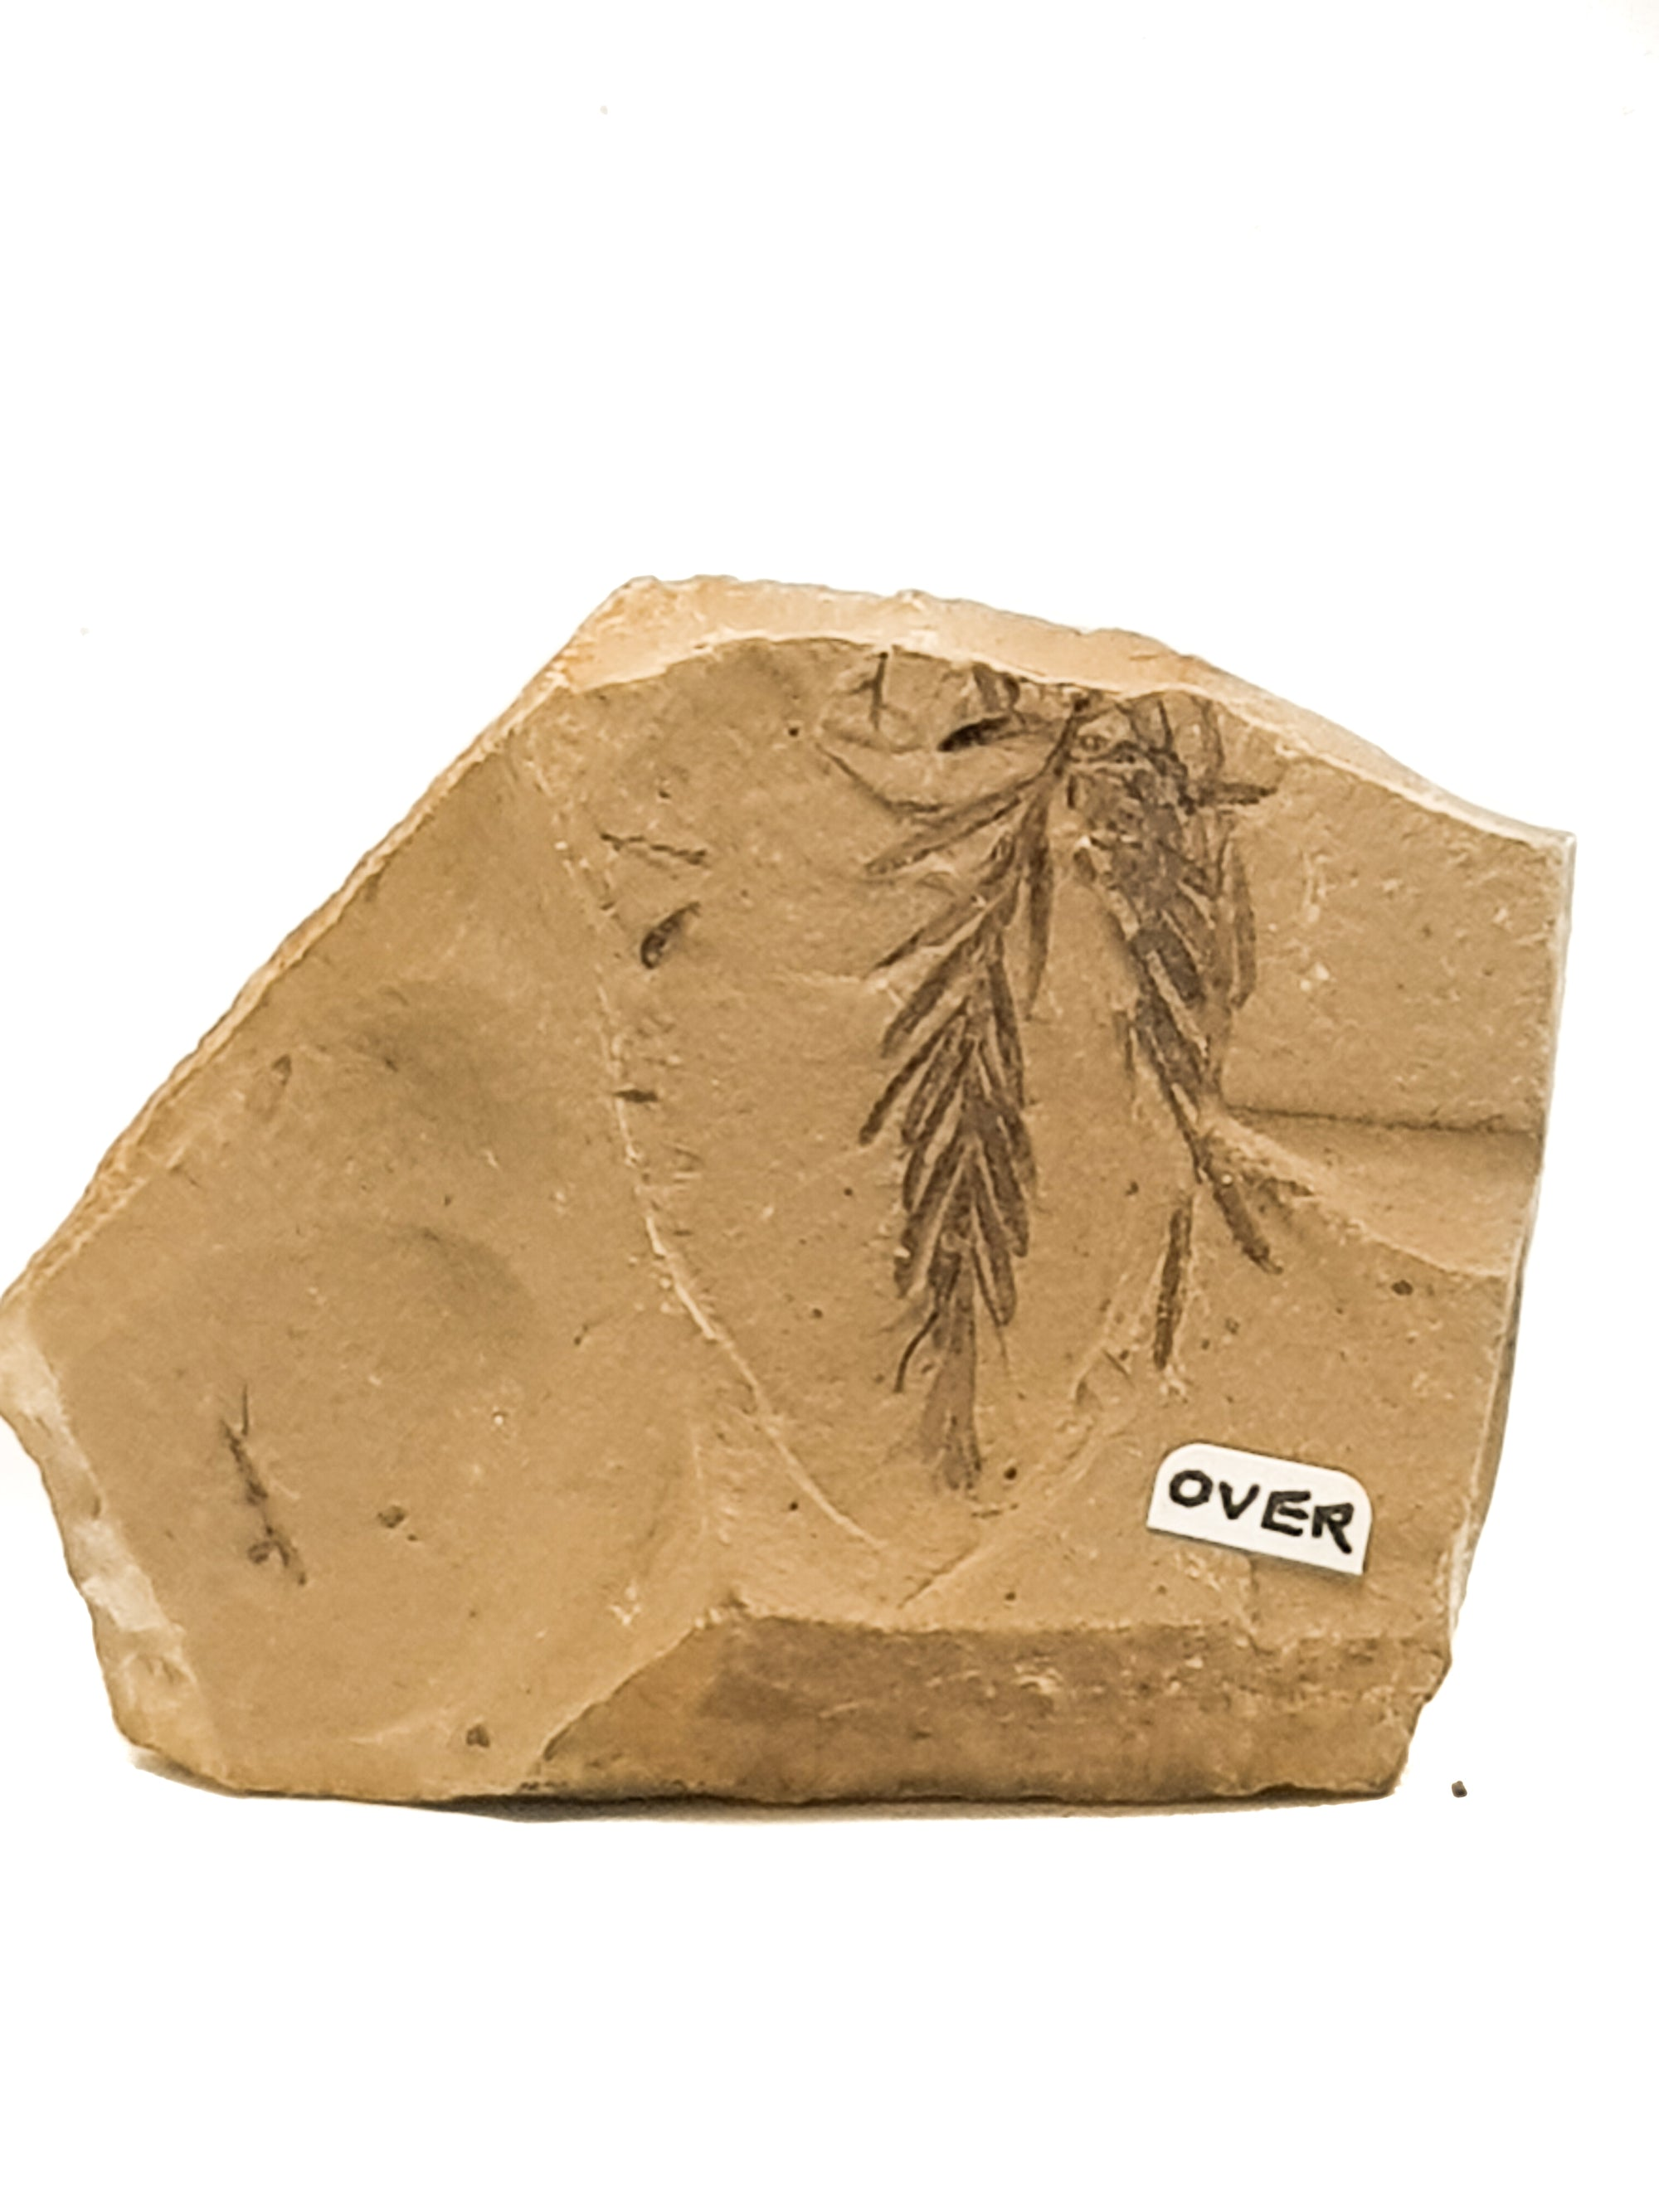 Fossilised metasequoia (dawn redwood) leaf on a beige matrix. a small handwritten label says OVER